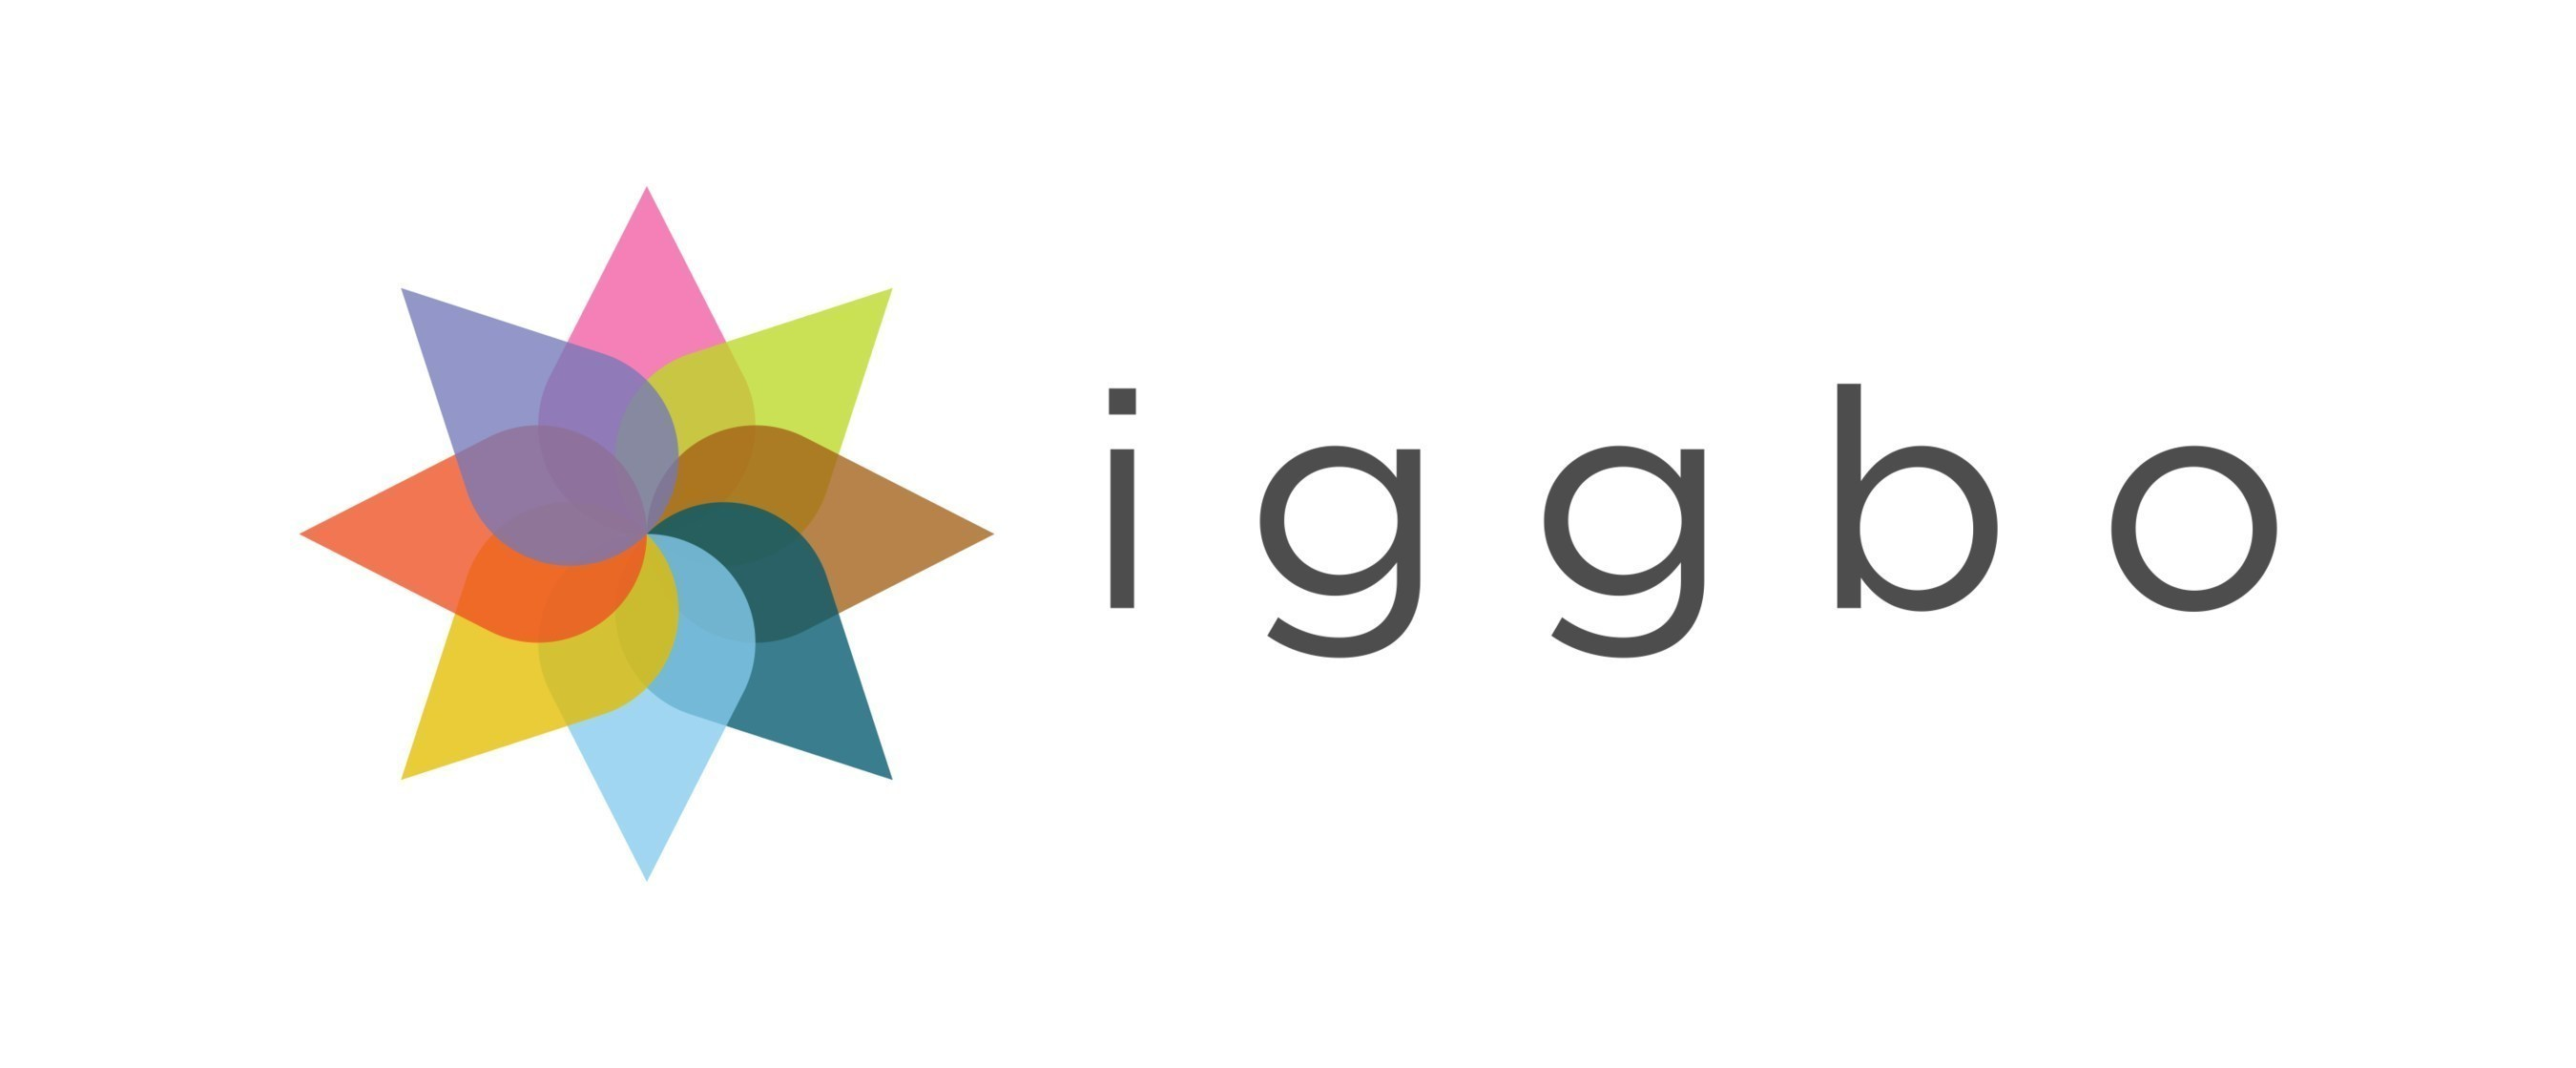 Iggbo Hires Affordable Care Act Executive To Lead Customer Care/Help Desk  Operation